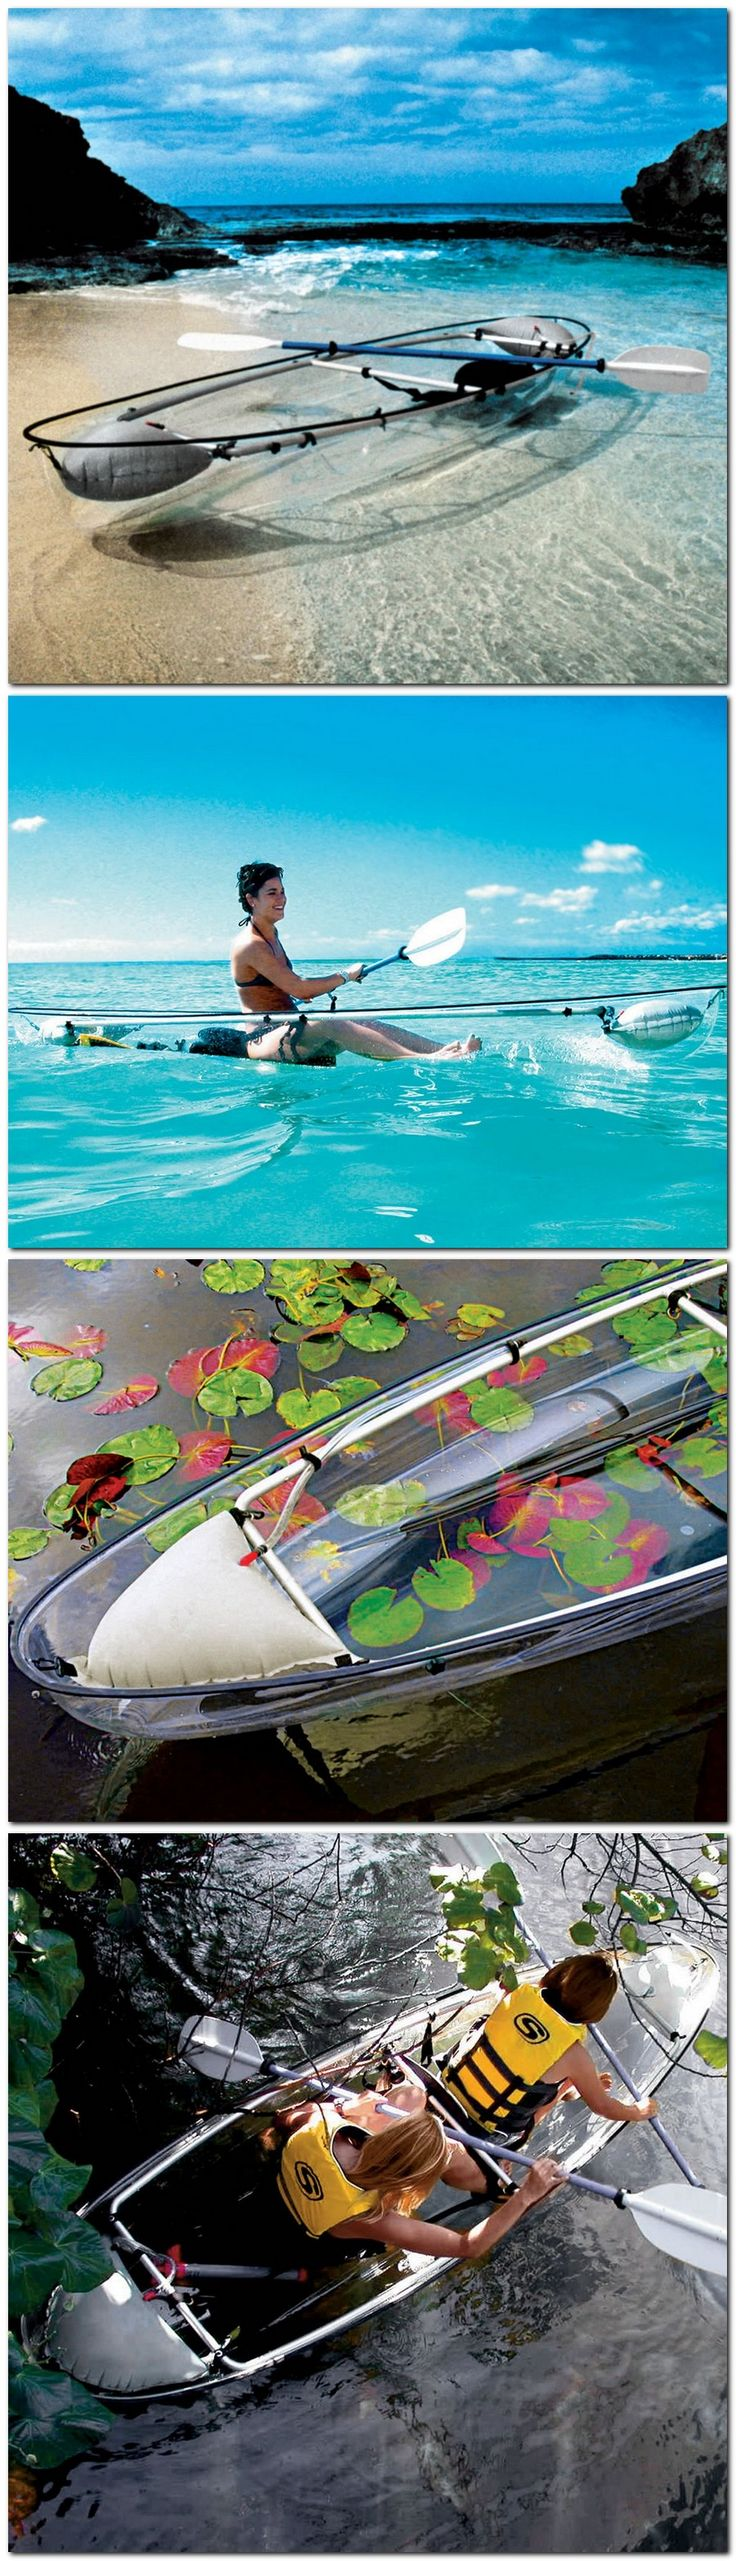 Transparent Canoe Kayak 60 Best Kayaking Images On Pinterest Kayaks Kayak Camping And